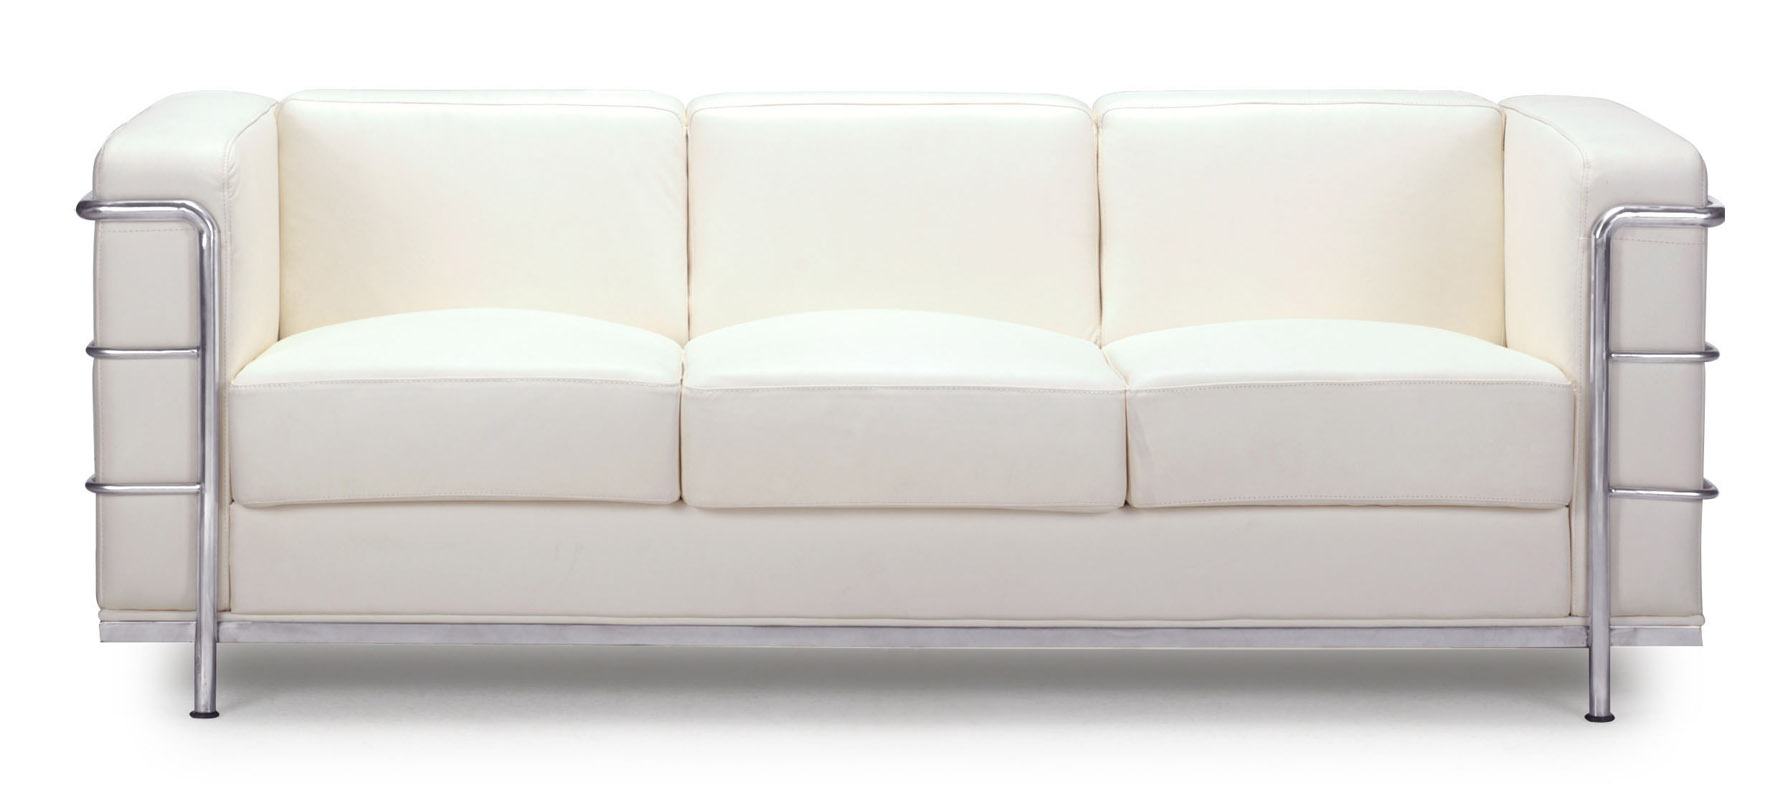 White Leather Sofa at Zuri Furniture